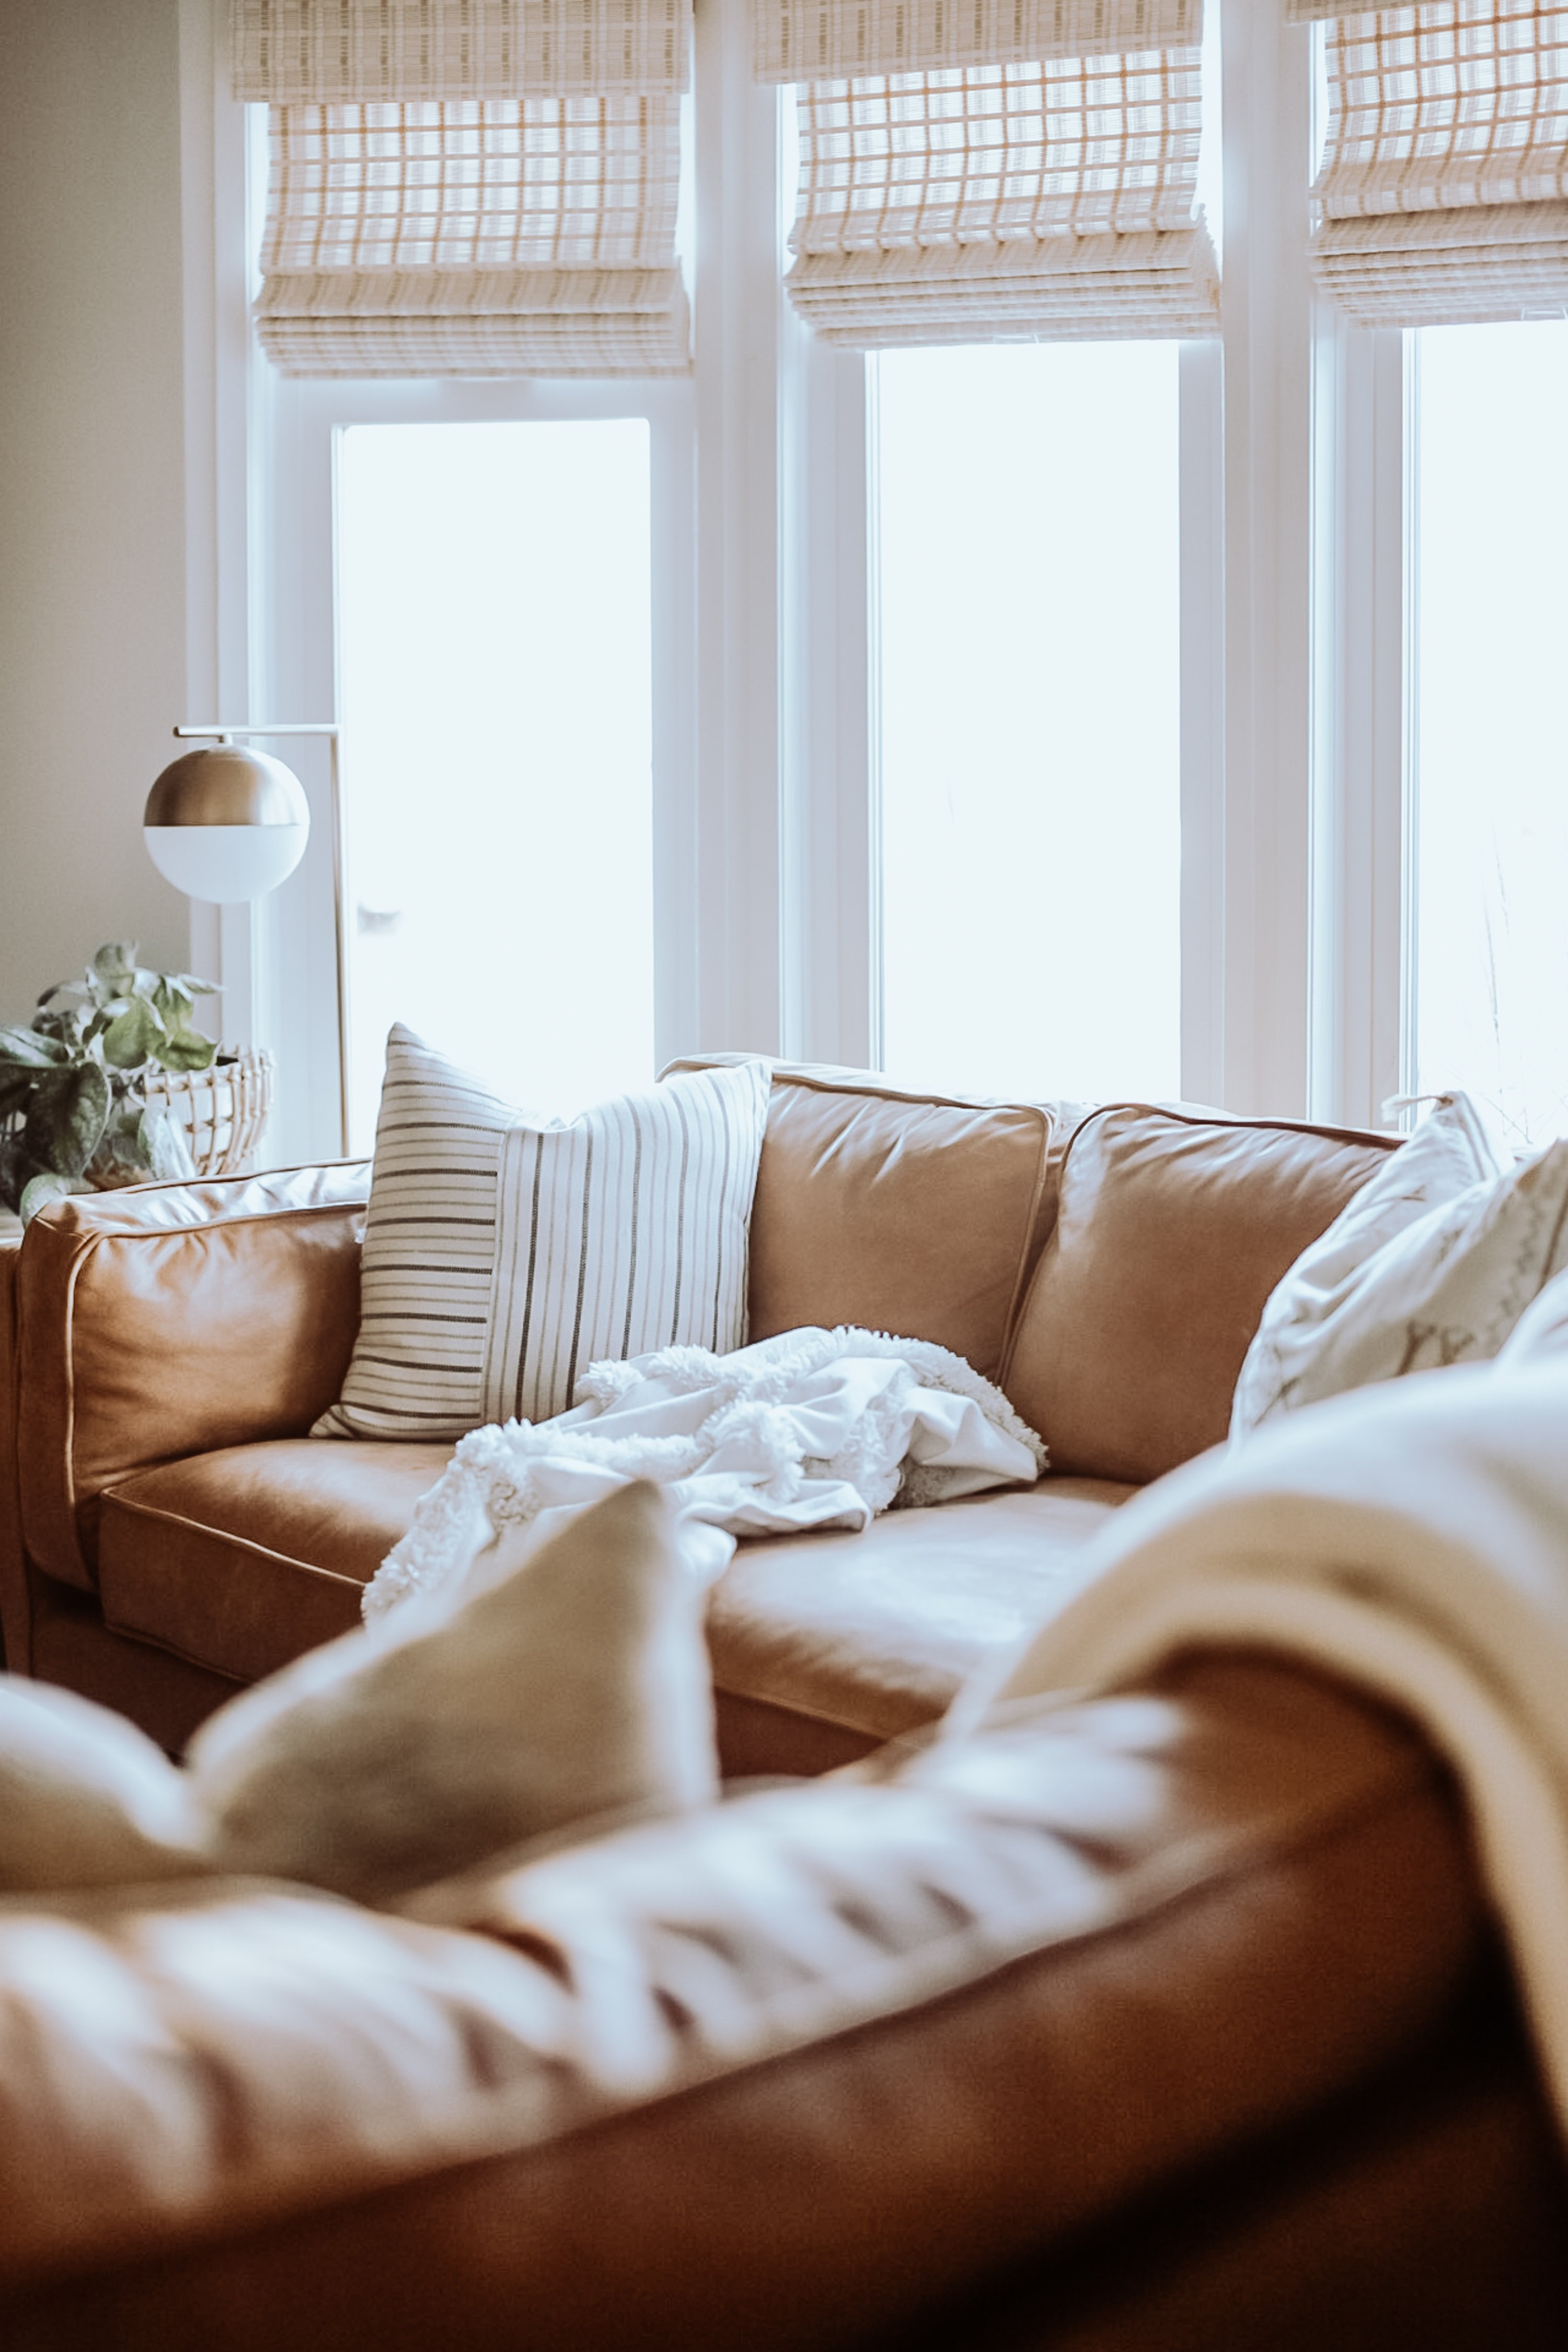 All You Need To Know About The Timber Sectional from Article. Comparing Structube and Article Sofas and leather types. What Makes Article Stand out.